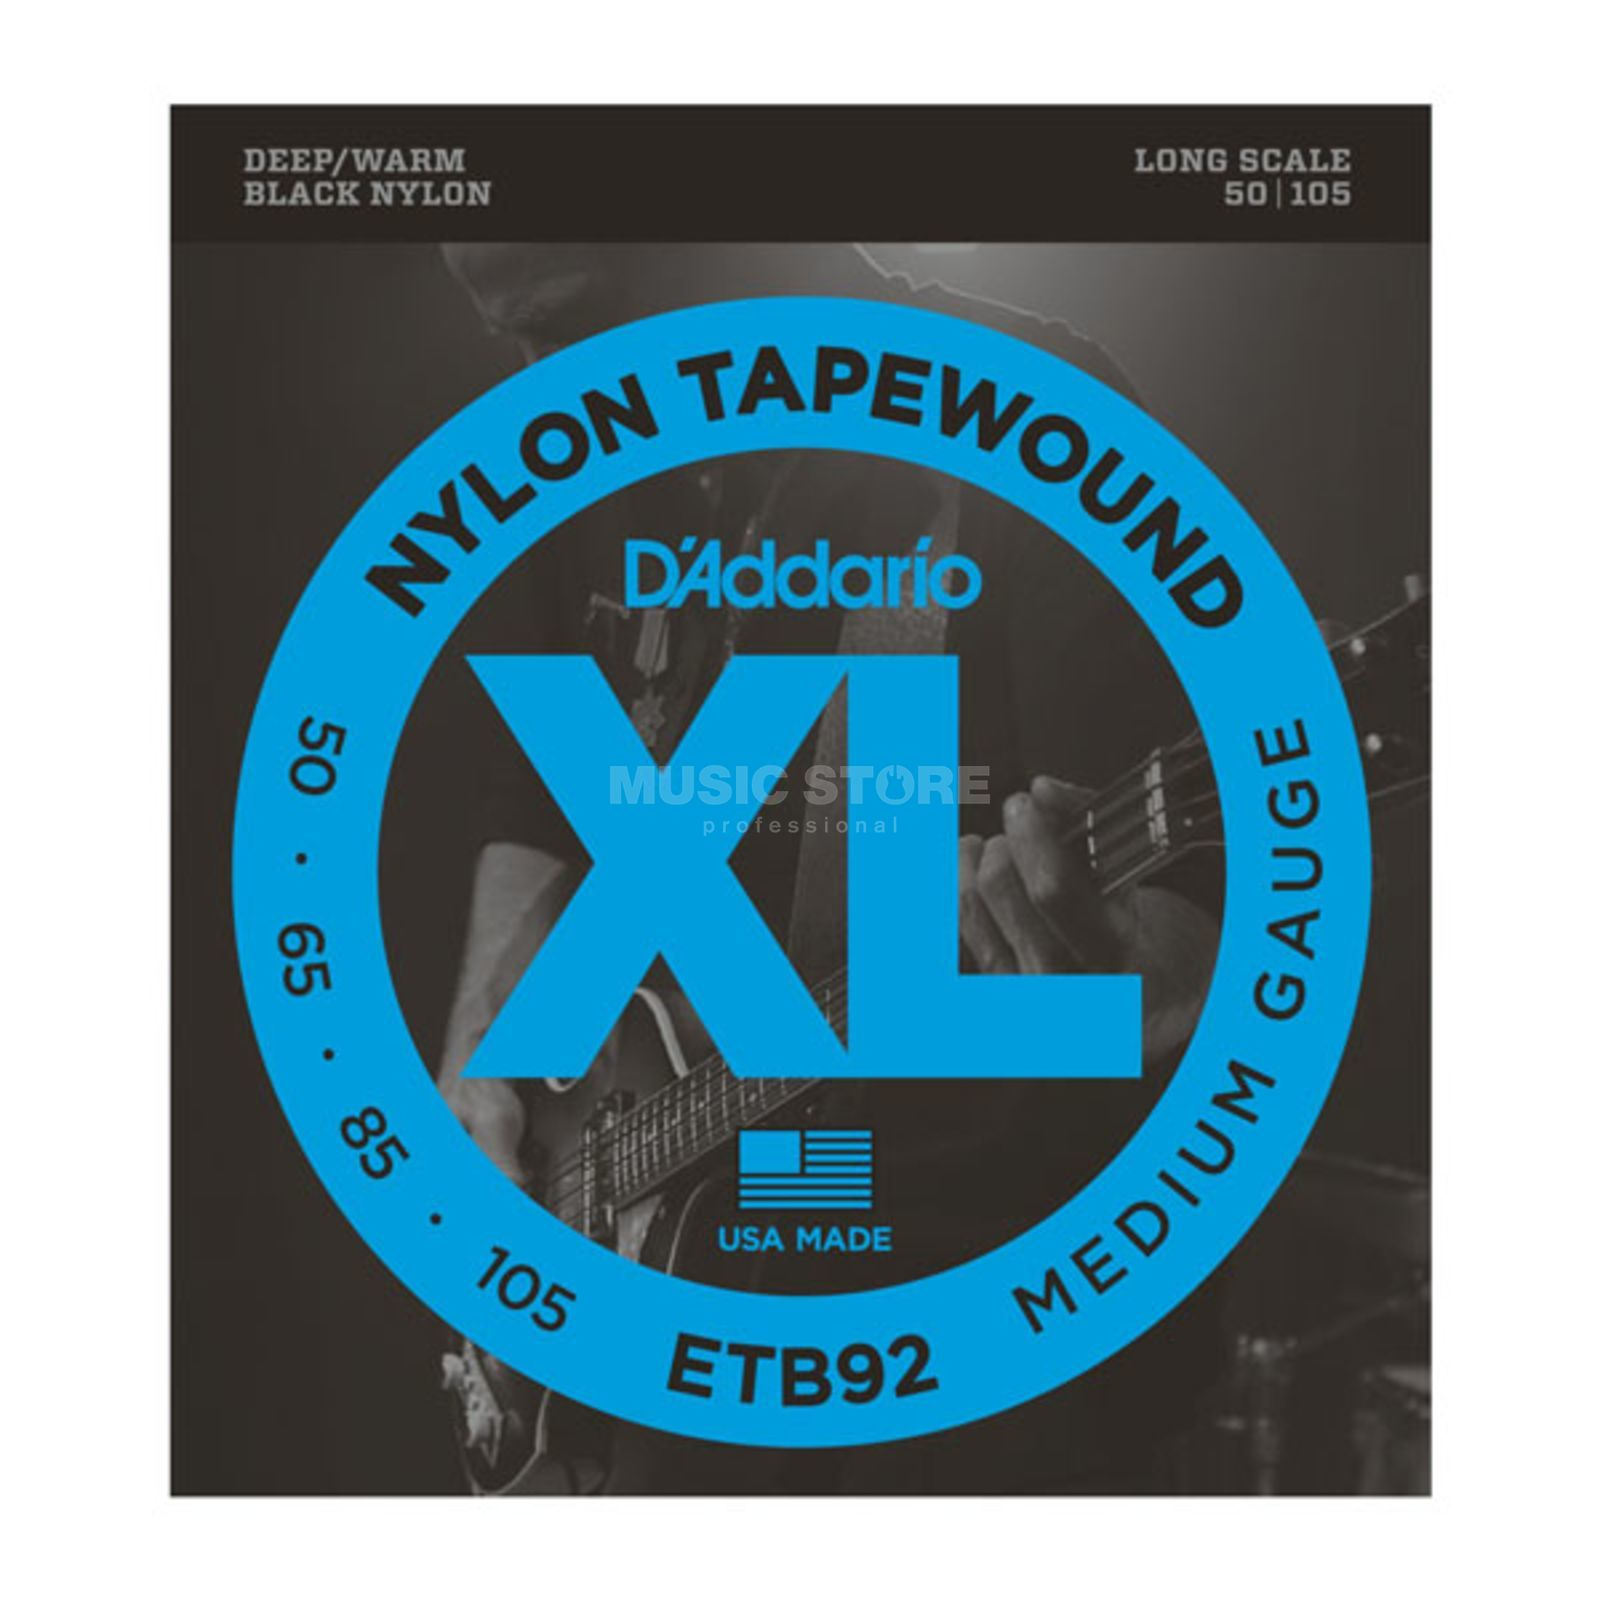 D'Addario Bass Stings Tapewound 50-105 50-65-85-105, Nylon, ETB92 Product Image